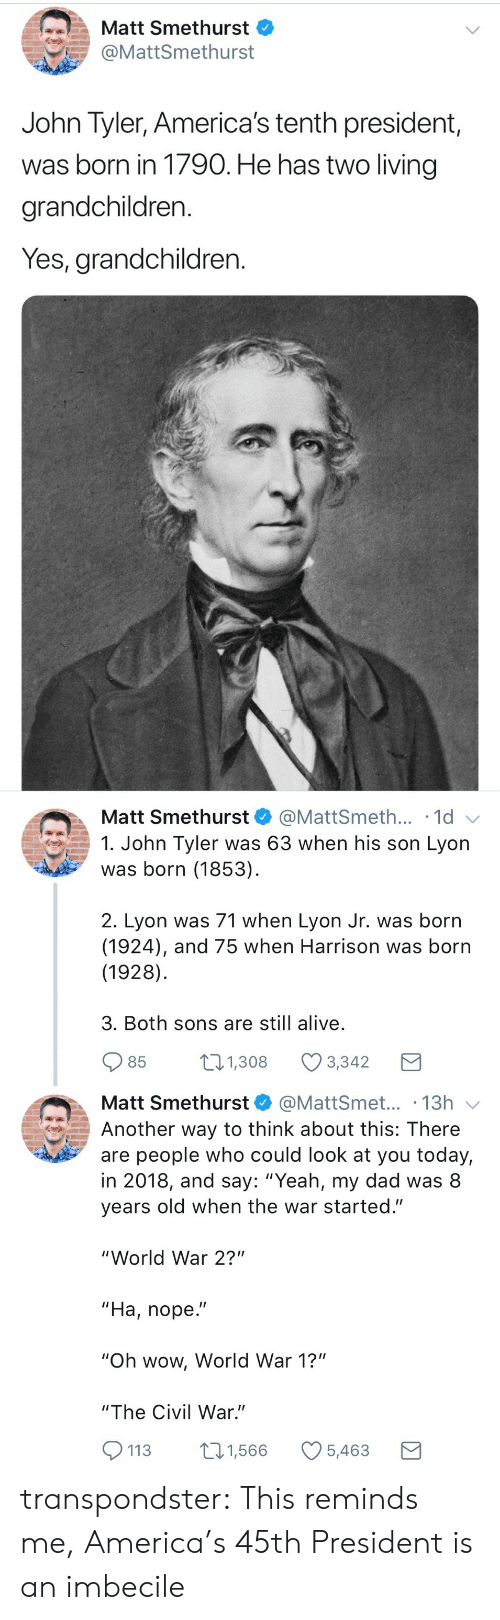 "Alive, America, and Dad: Matt Smethurst  @MattSmethurst  John Tyler, America's tenth president,  was born in 1790. He has two living  grandchildren.  Yes, grandchildren.   Matt Smethurst  @MattSmeth... 1d  1. John Tyler was 63 when his son Lyon  was born (1853)  2. Lyon was 71 when Lyon Jr. was born  (1924), and 75 when Harrison was born  (1928)  3. Both sons are still alive  85  1.308 Ø3342  Matt Smethurst@MattSmet... .13h  Another way to think about this: There  are people who could look at you today,  in 2018, and say: ""Yeah, my dad was 8  years old when the war started.""  ""World War 2?""  ""Ha, nope.""  ""Oh wow, World War 1?""  ""The Civil War.""  113 1,566 5,463 transpondster:  This reminds me, America's 45th President is an imbecile"